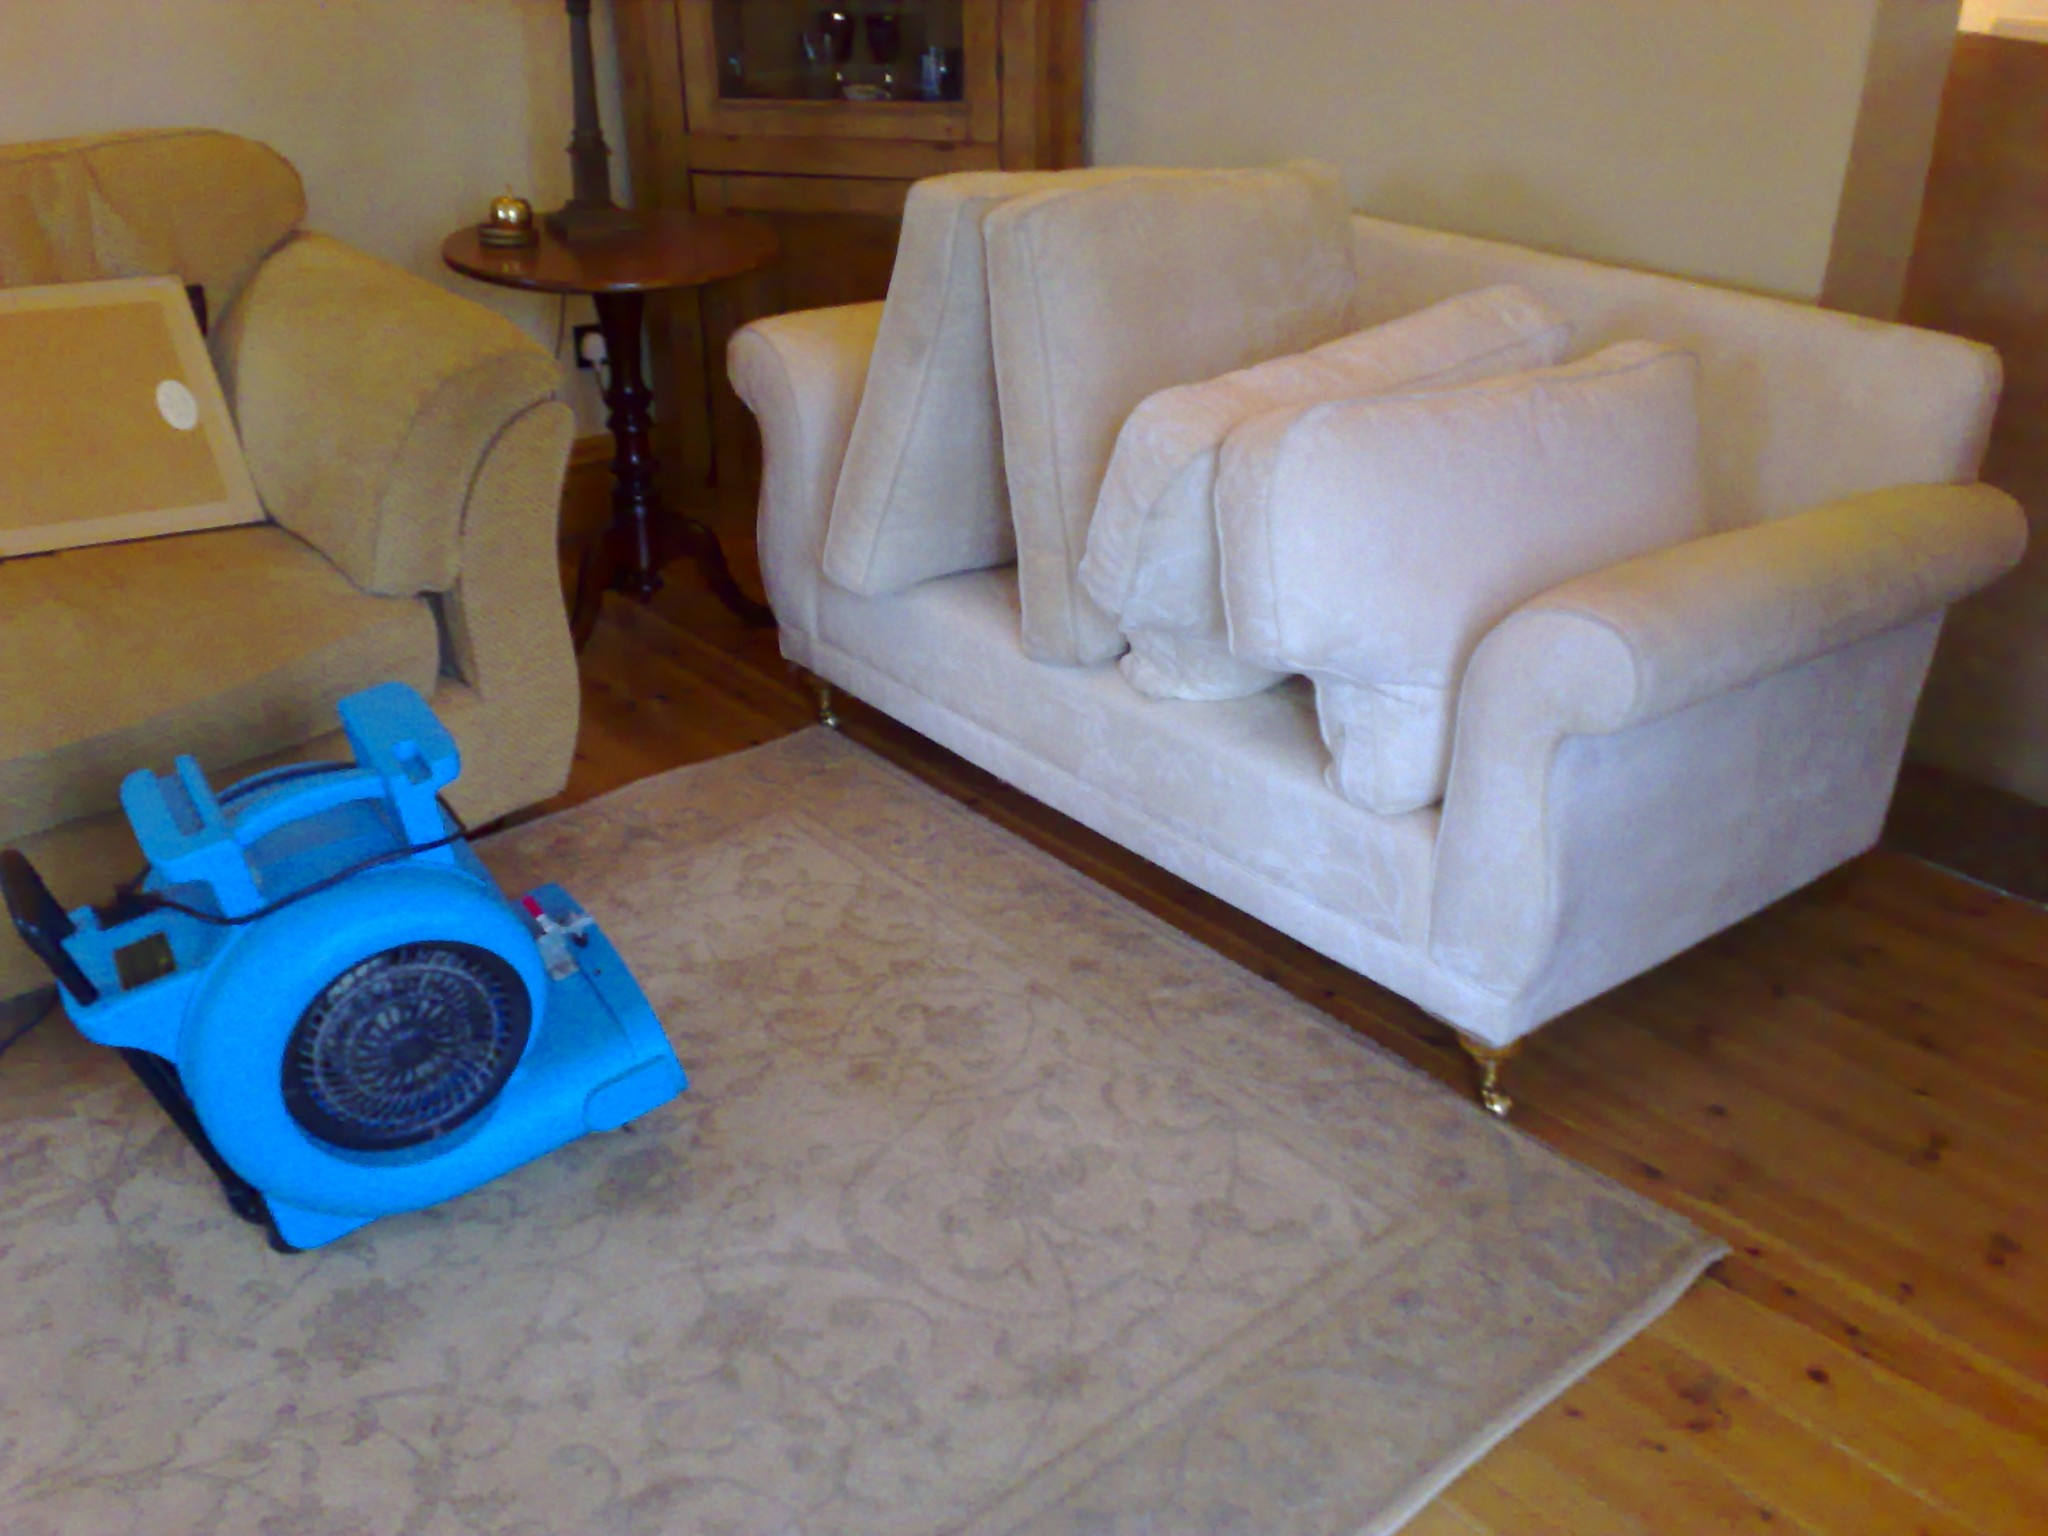 Upholstery cleaning - www.FloorCareSpecialists.co.uk